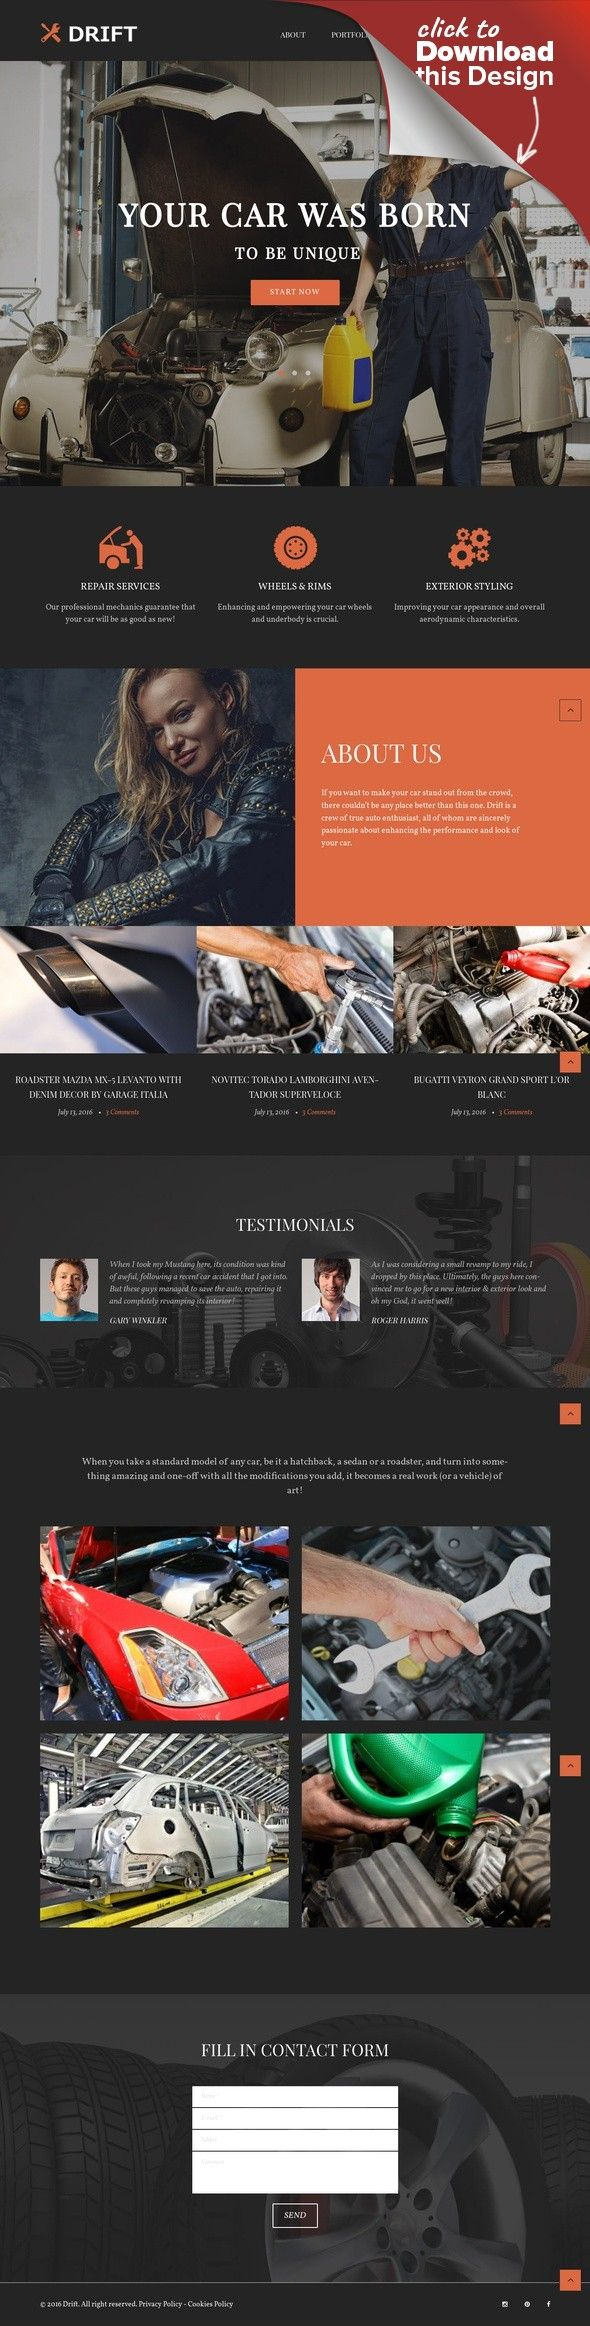 Tema de WordPress para Sitio de Tuning de coches | Tema de ...